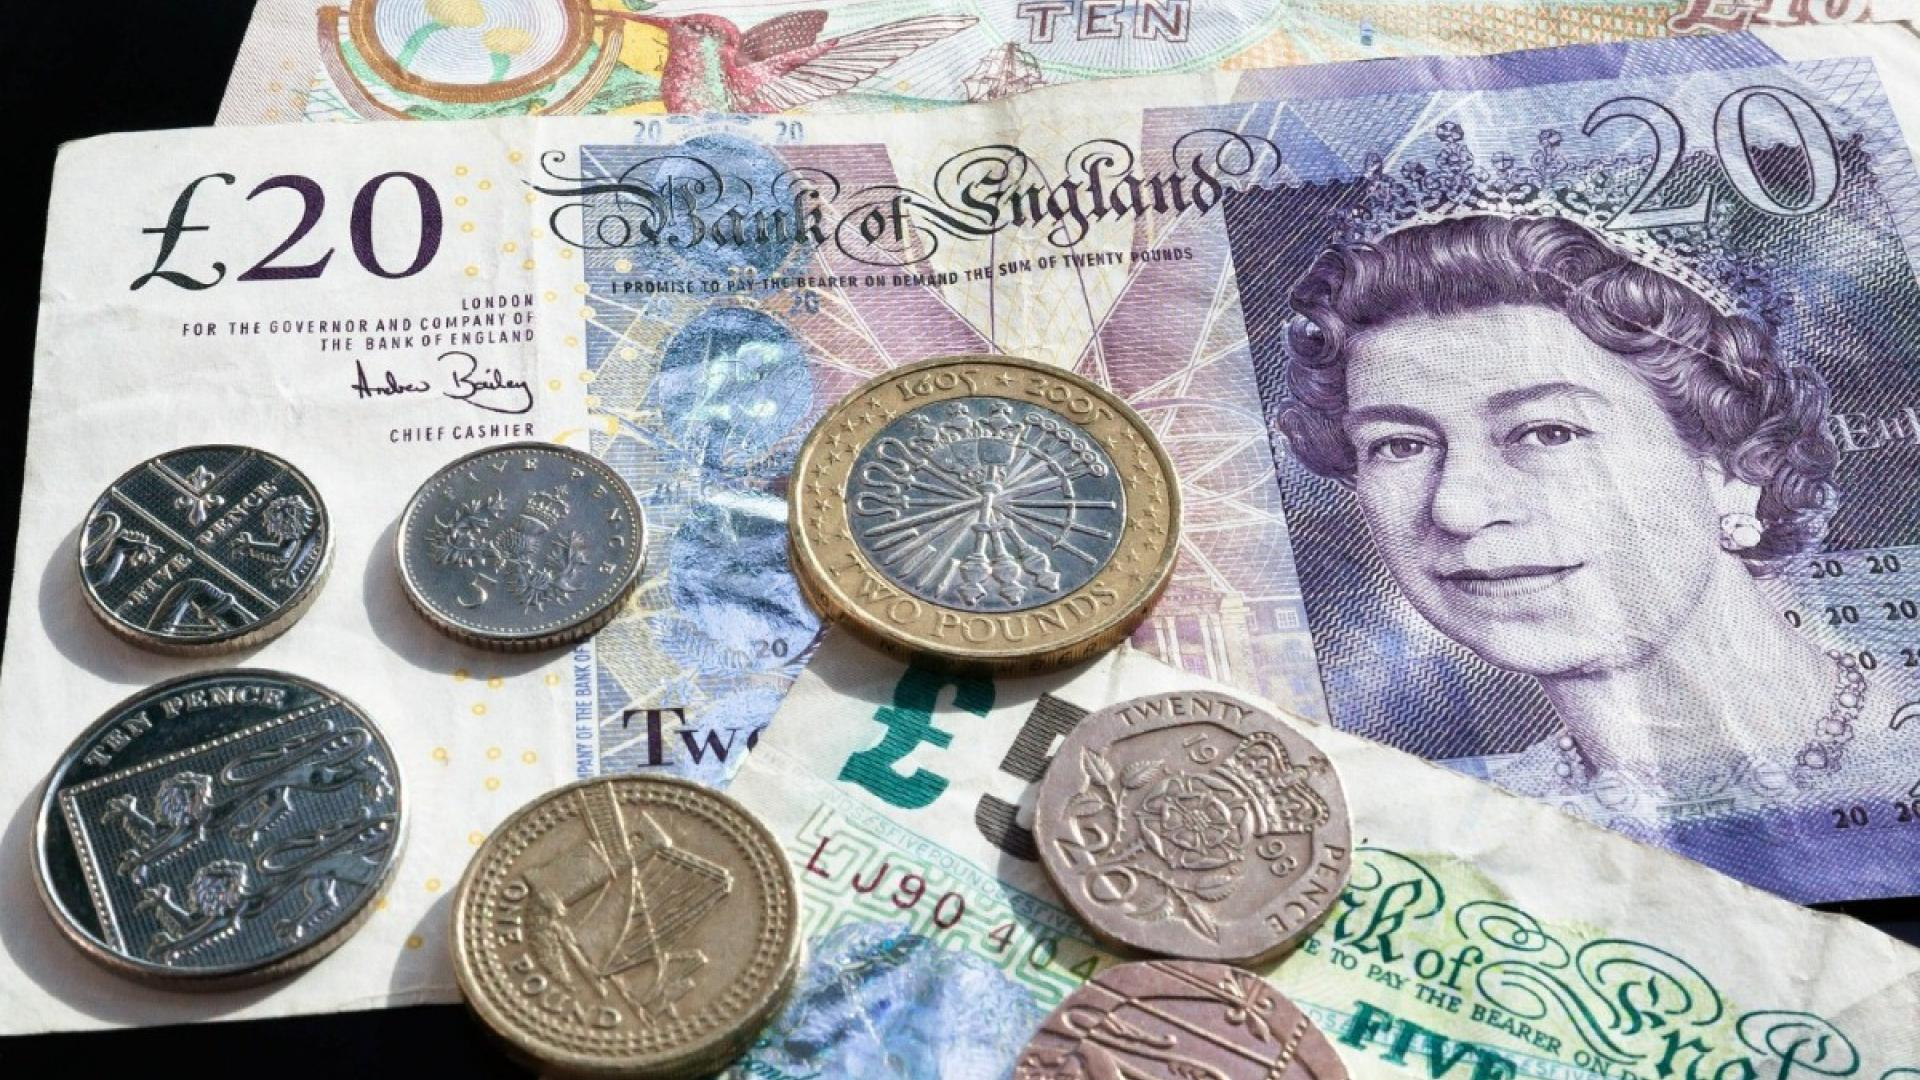 Trouble managing money can be an early sign of dementia